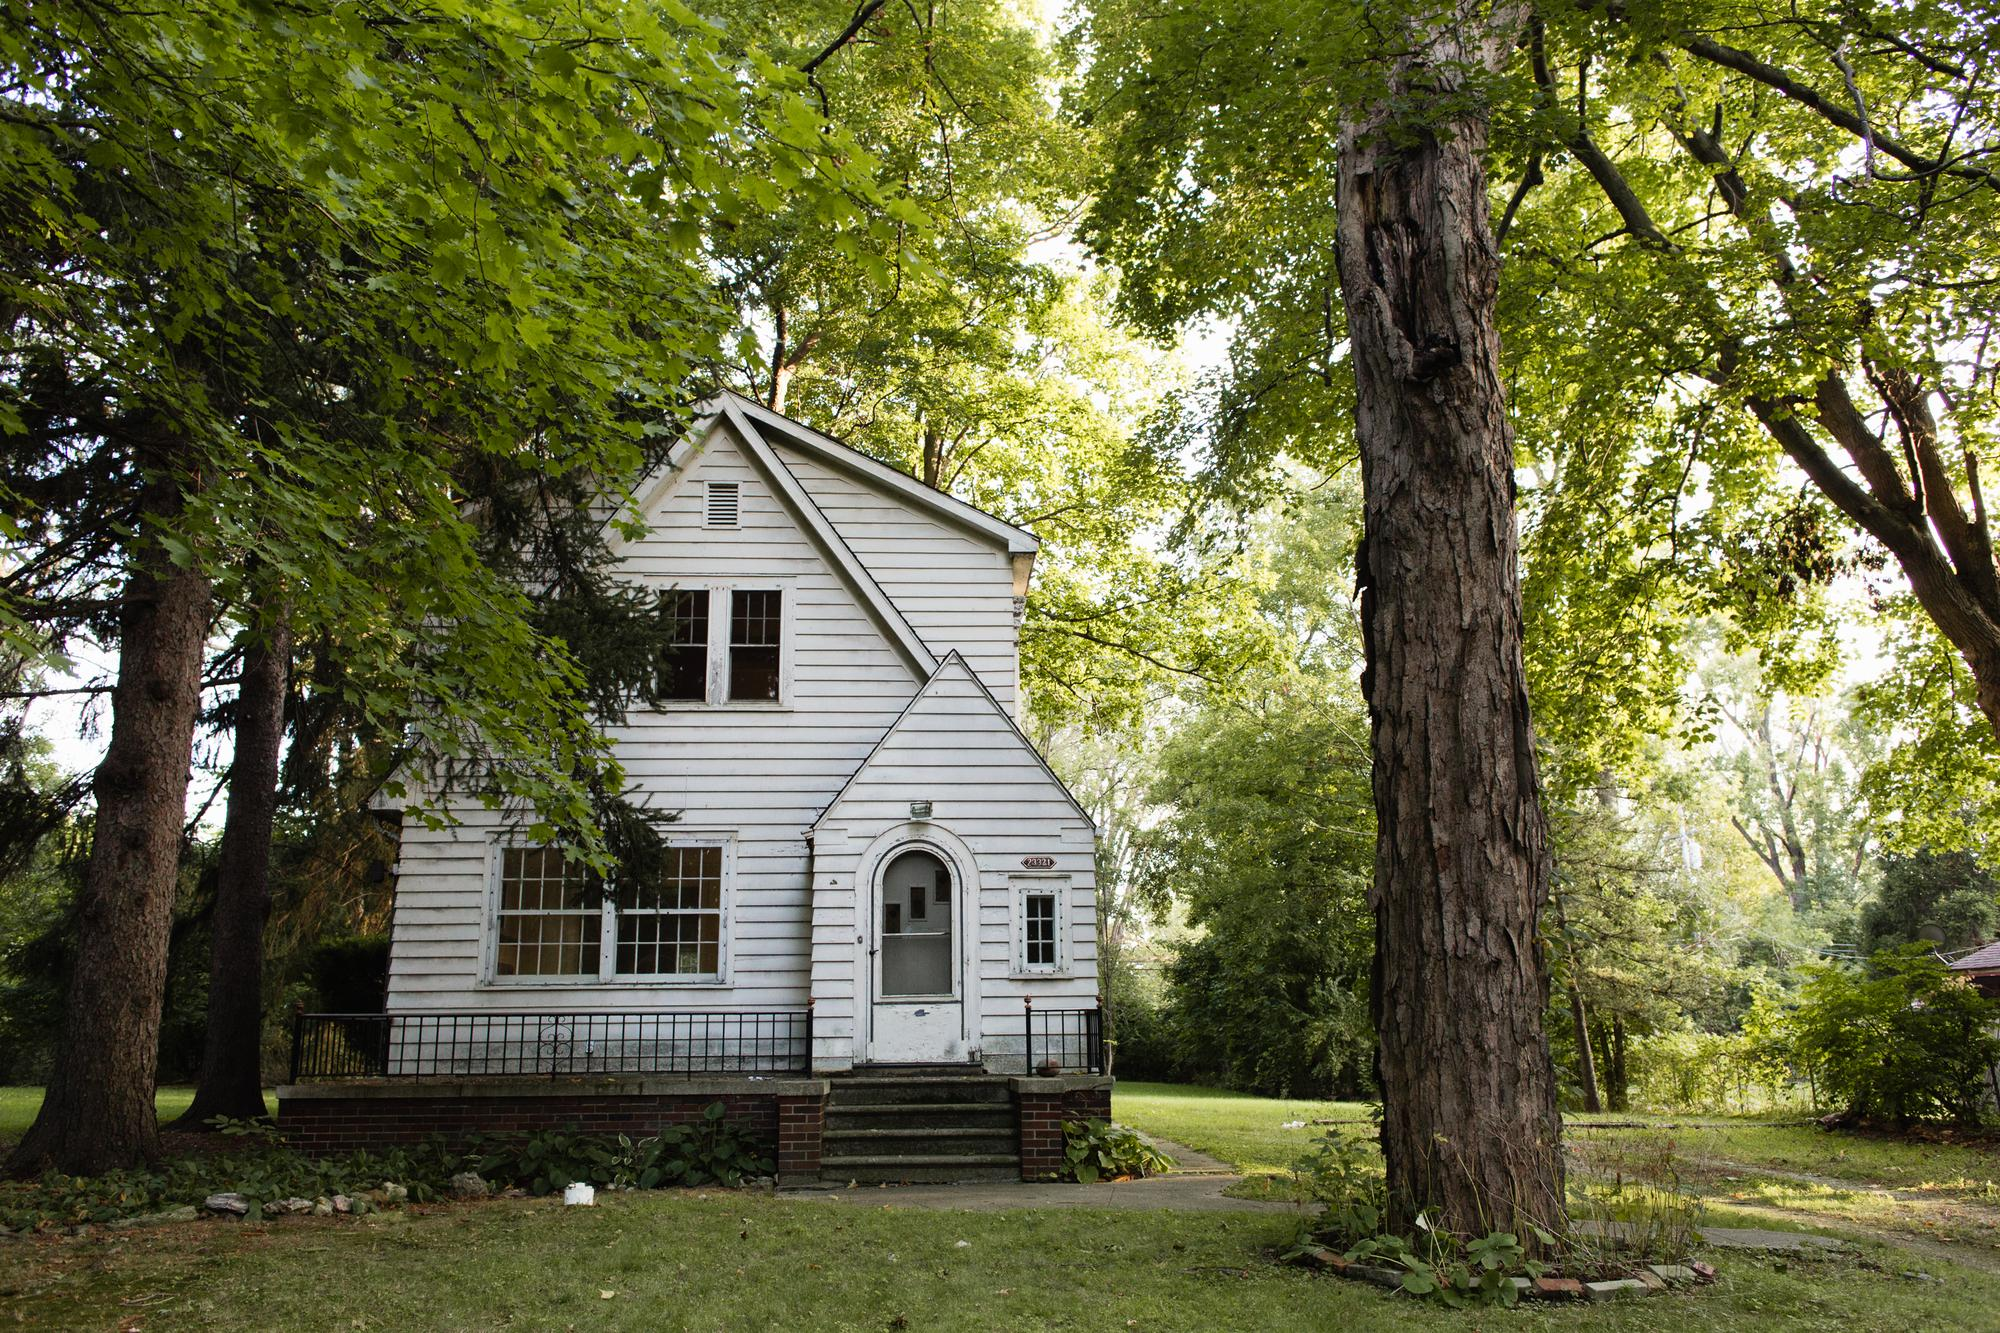 Brightmoor munity es To her to Protect Historic Farmhouse from Arson